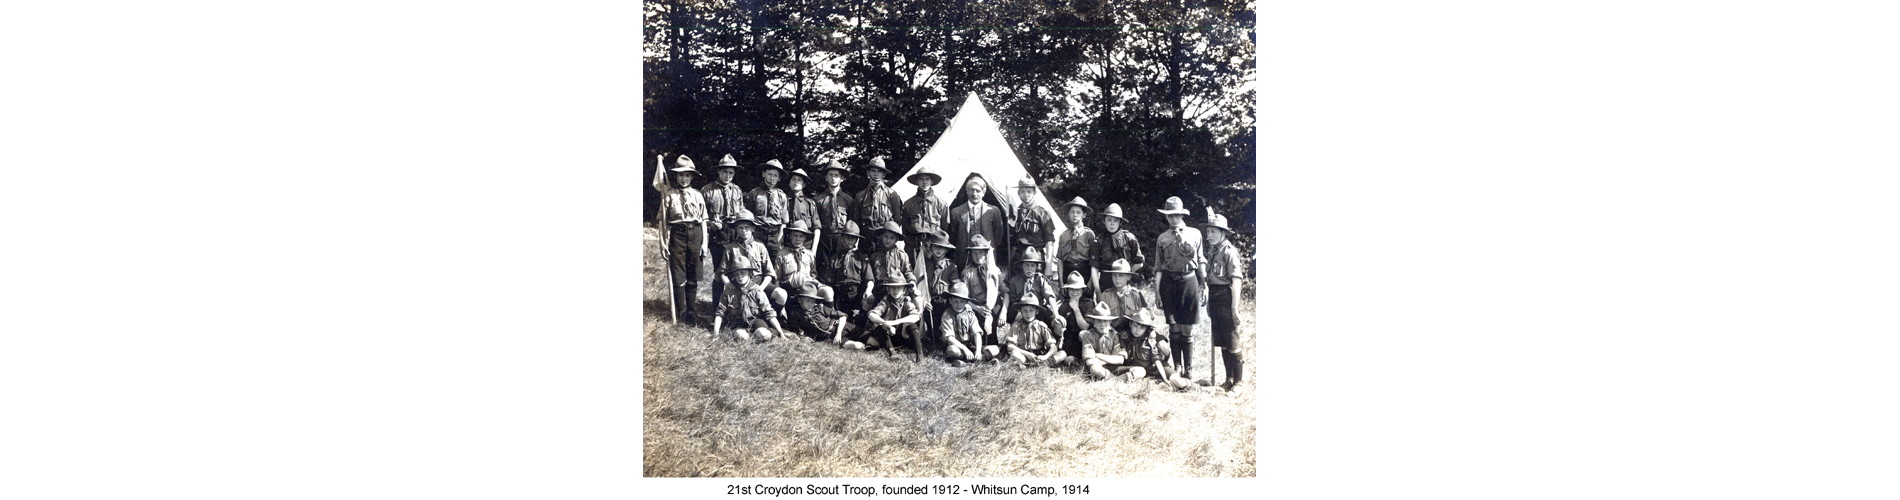 21st Croydon Scout Troop, founded 1912 - Whitsun Camp, 1914